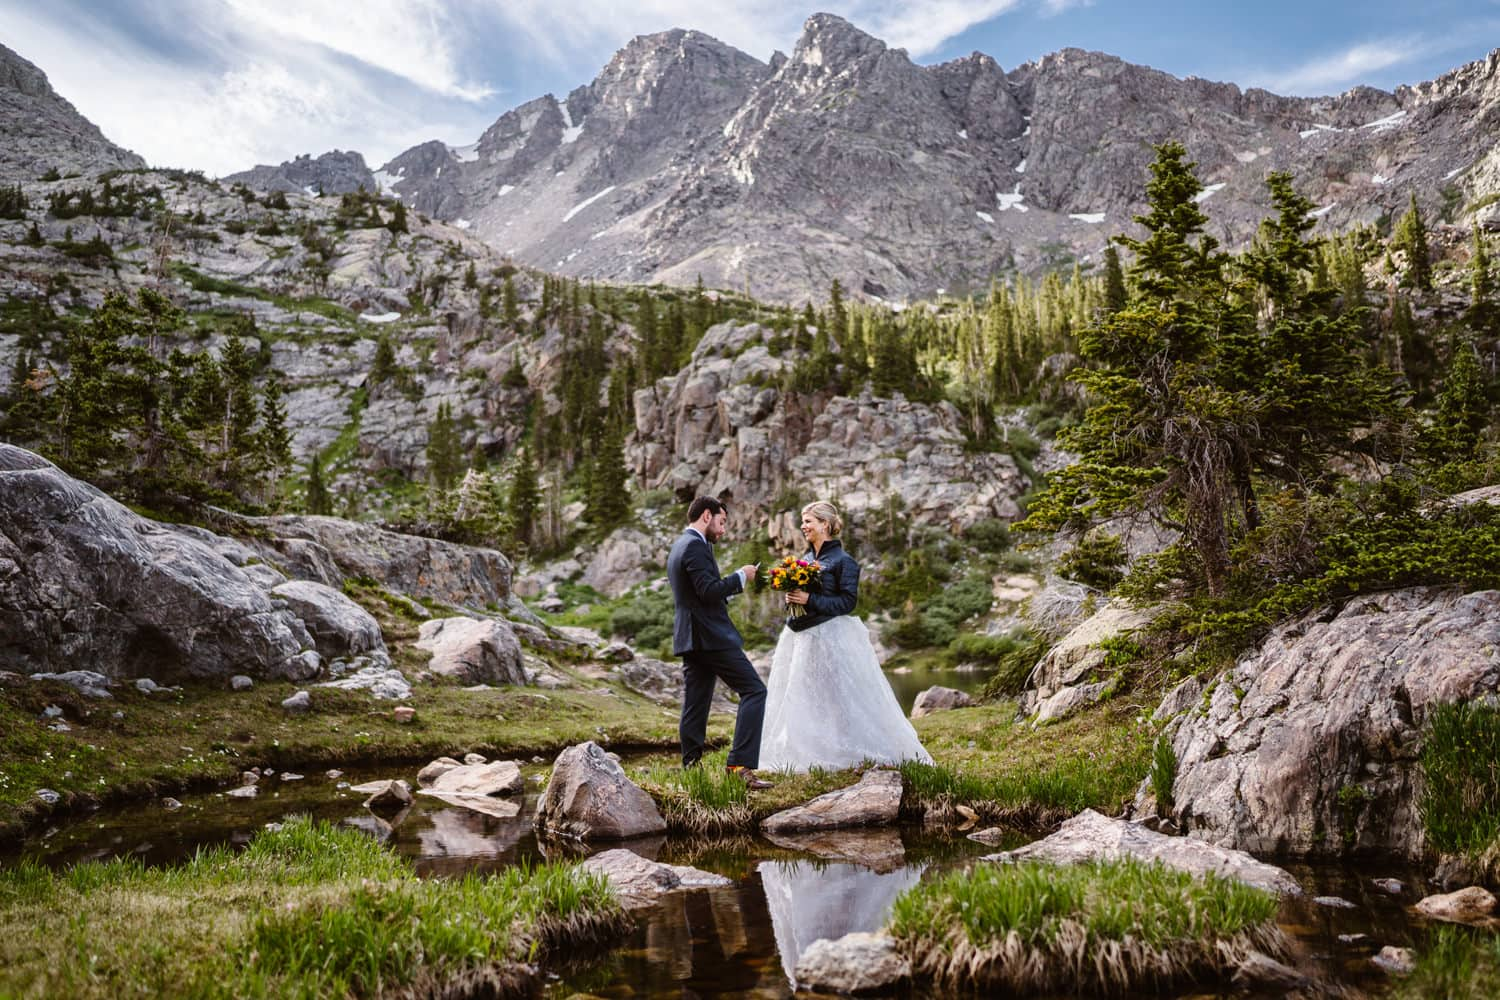 Vow Ceremony Colorado Elopement Packages